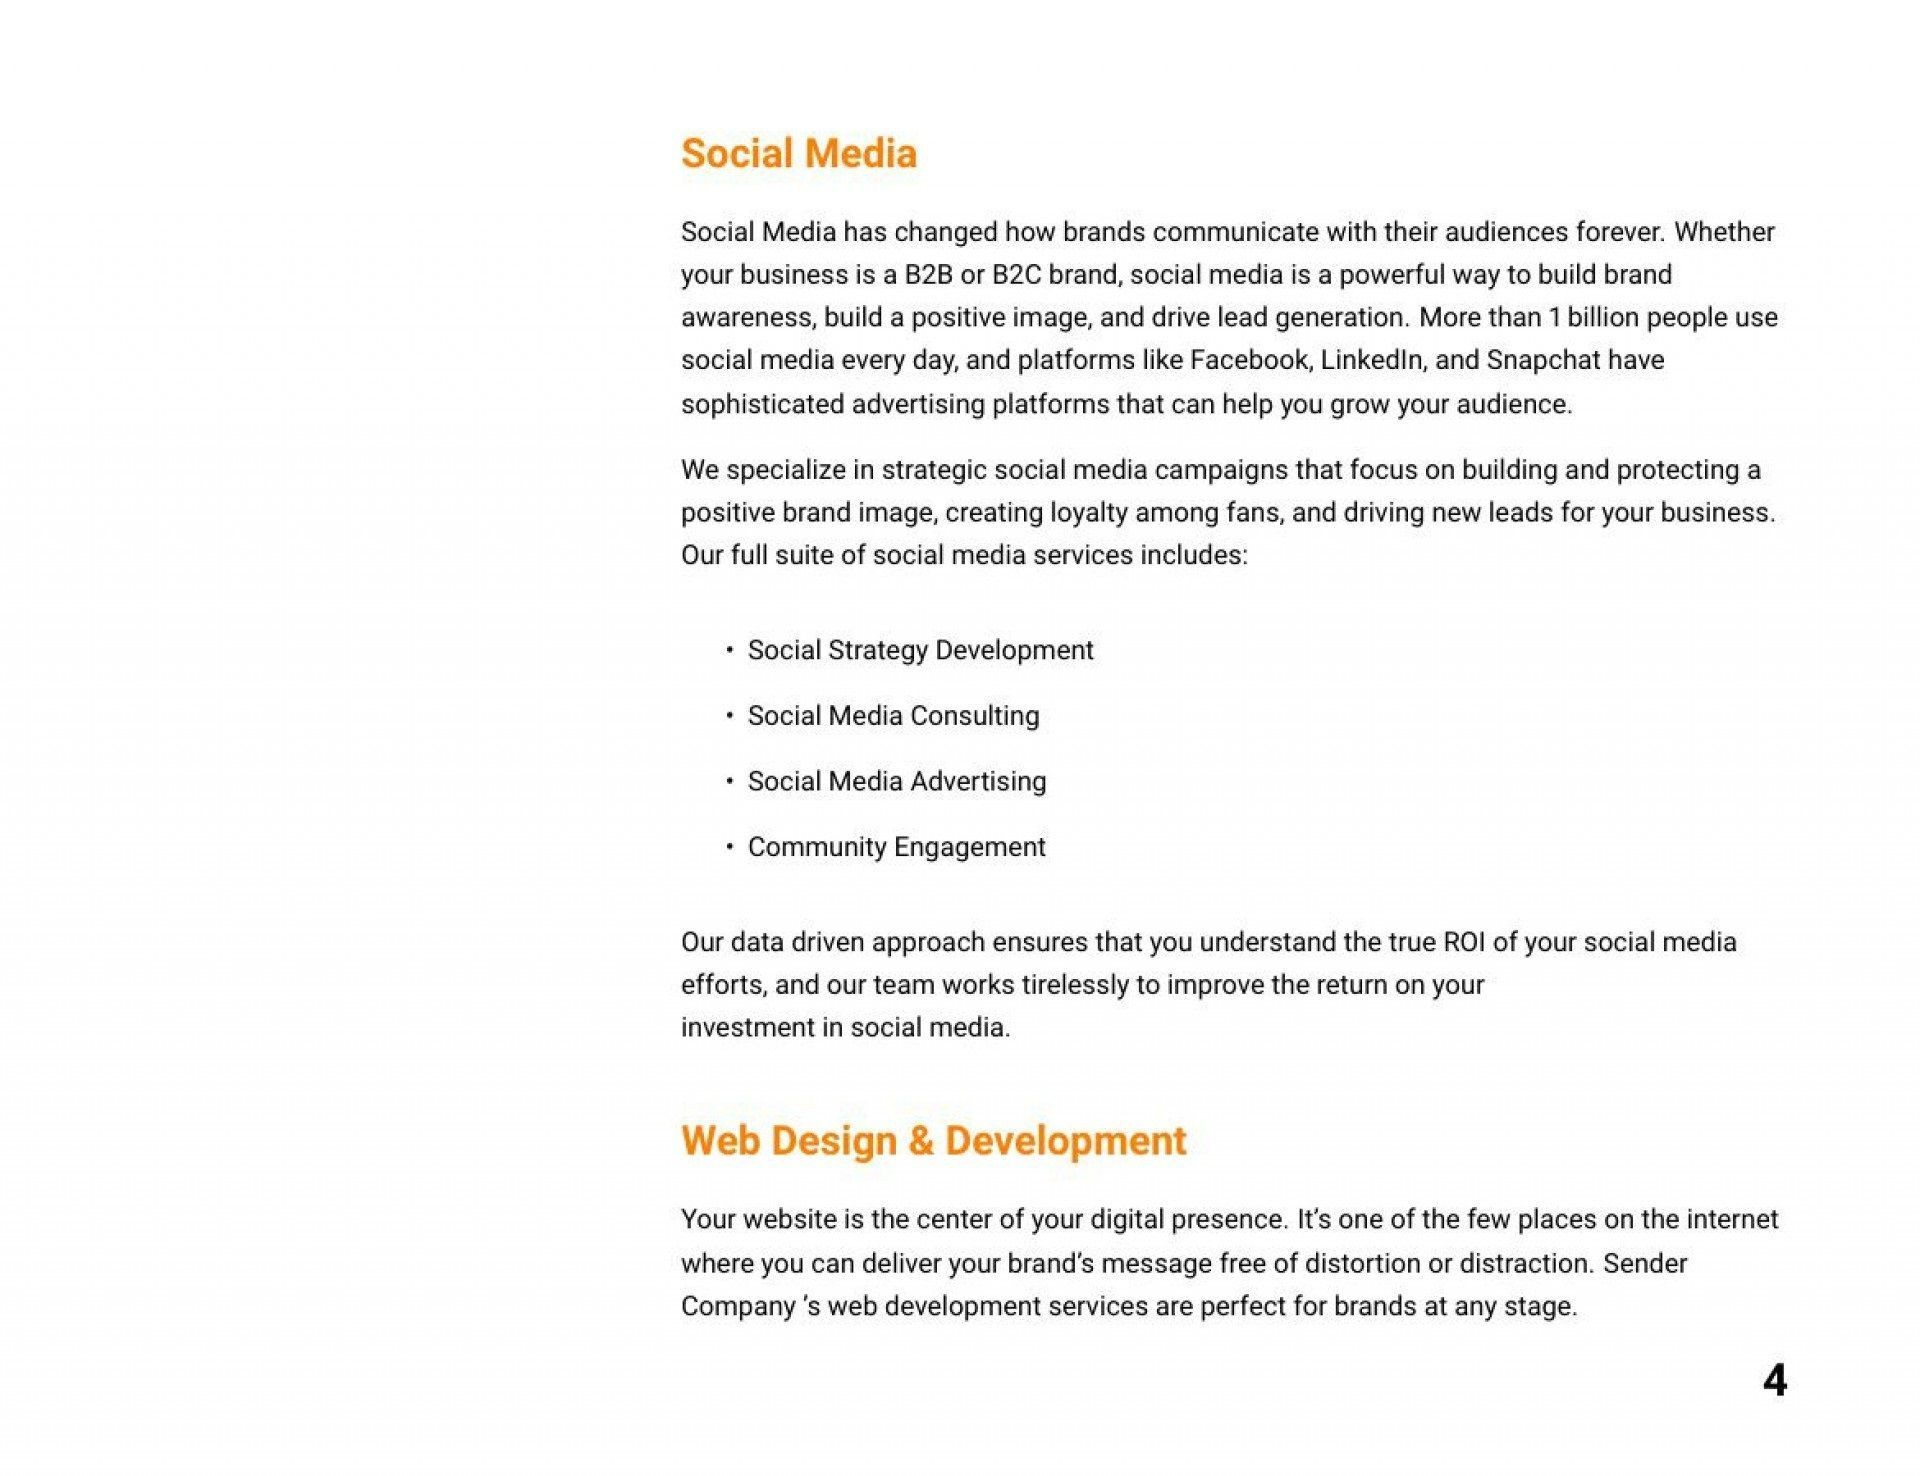 007 Astounding Social Media Proposal Format Concept  Marketing Example Plan1920